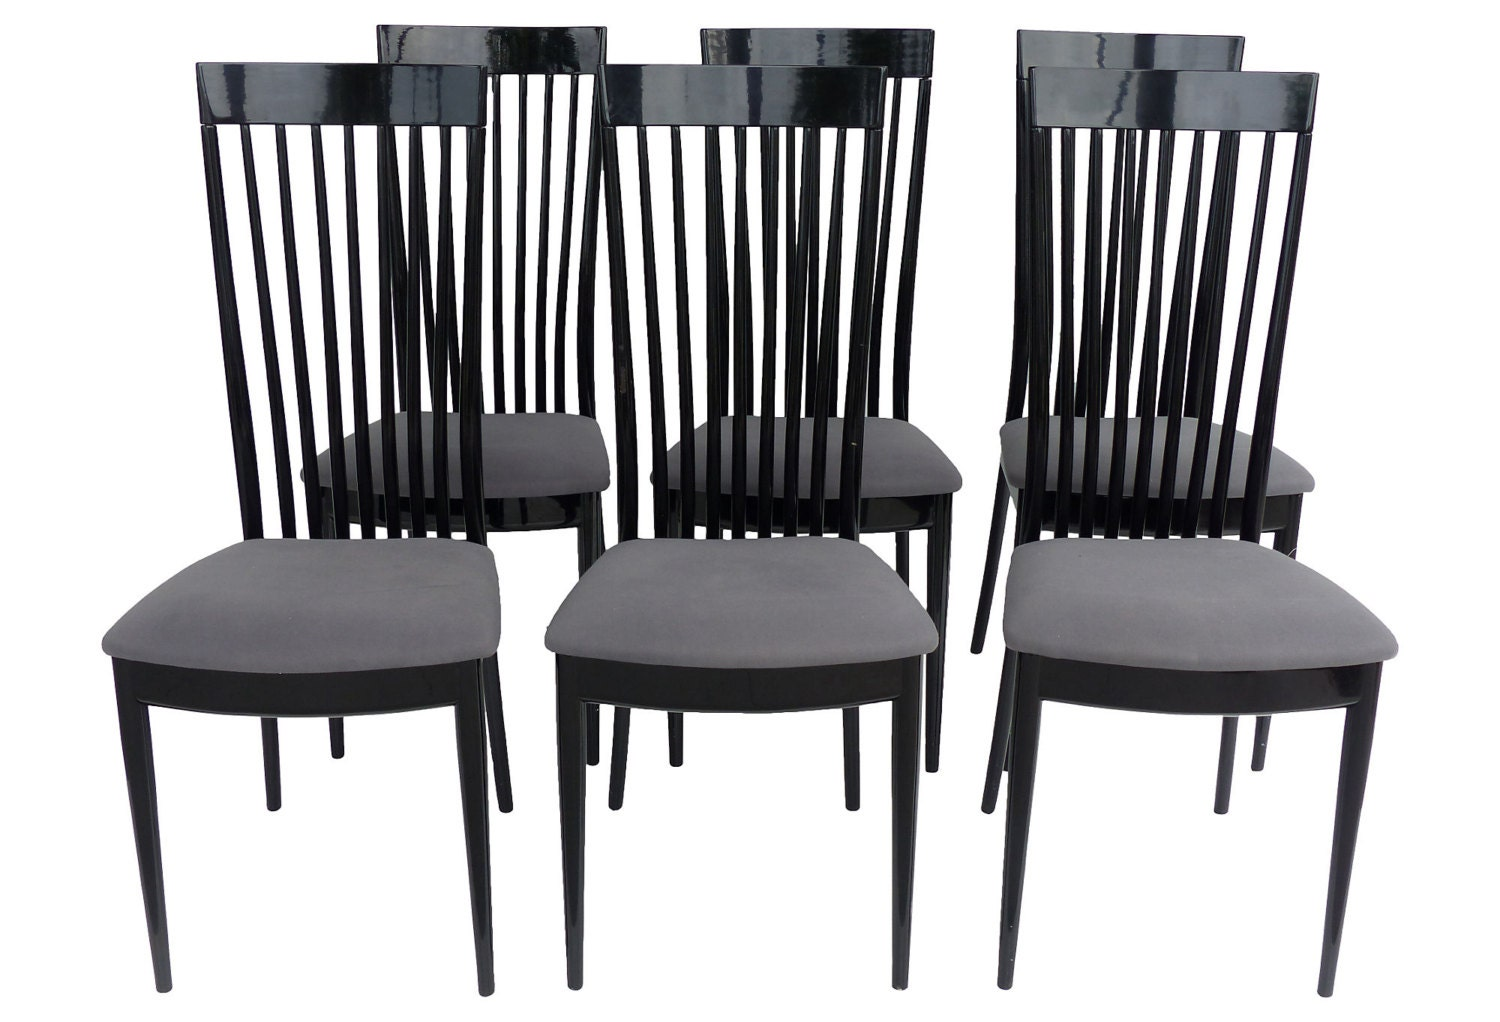 Set Of 6 High Back Dining Chairs By Pietro Costantini For Ello Furniture